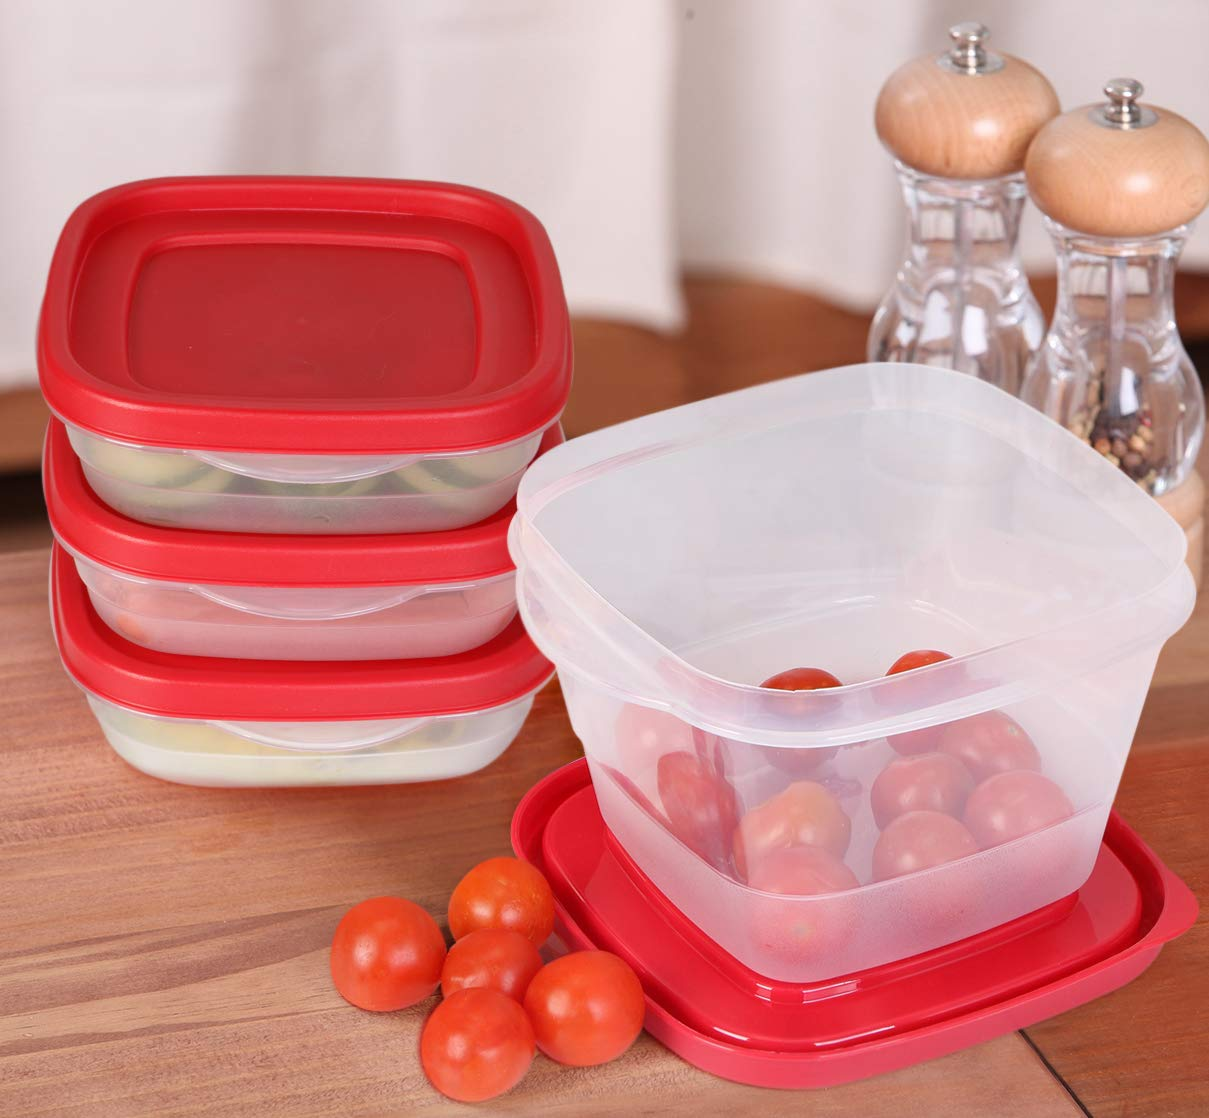 Utopia Kitchen Plastic Food Storage Containers with Lids [40 Pack] by Utopia Kitchen (Image #5)